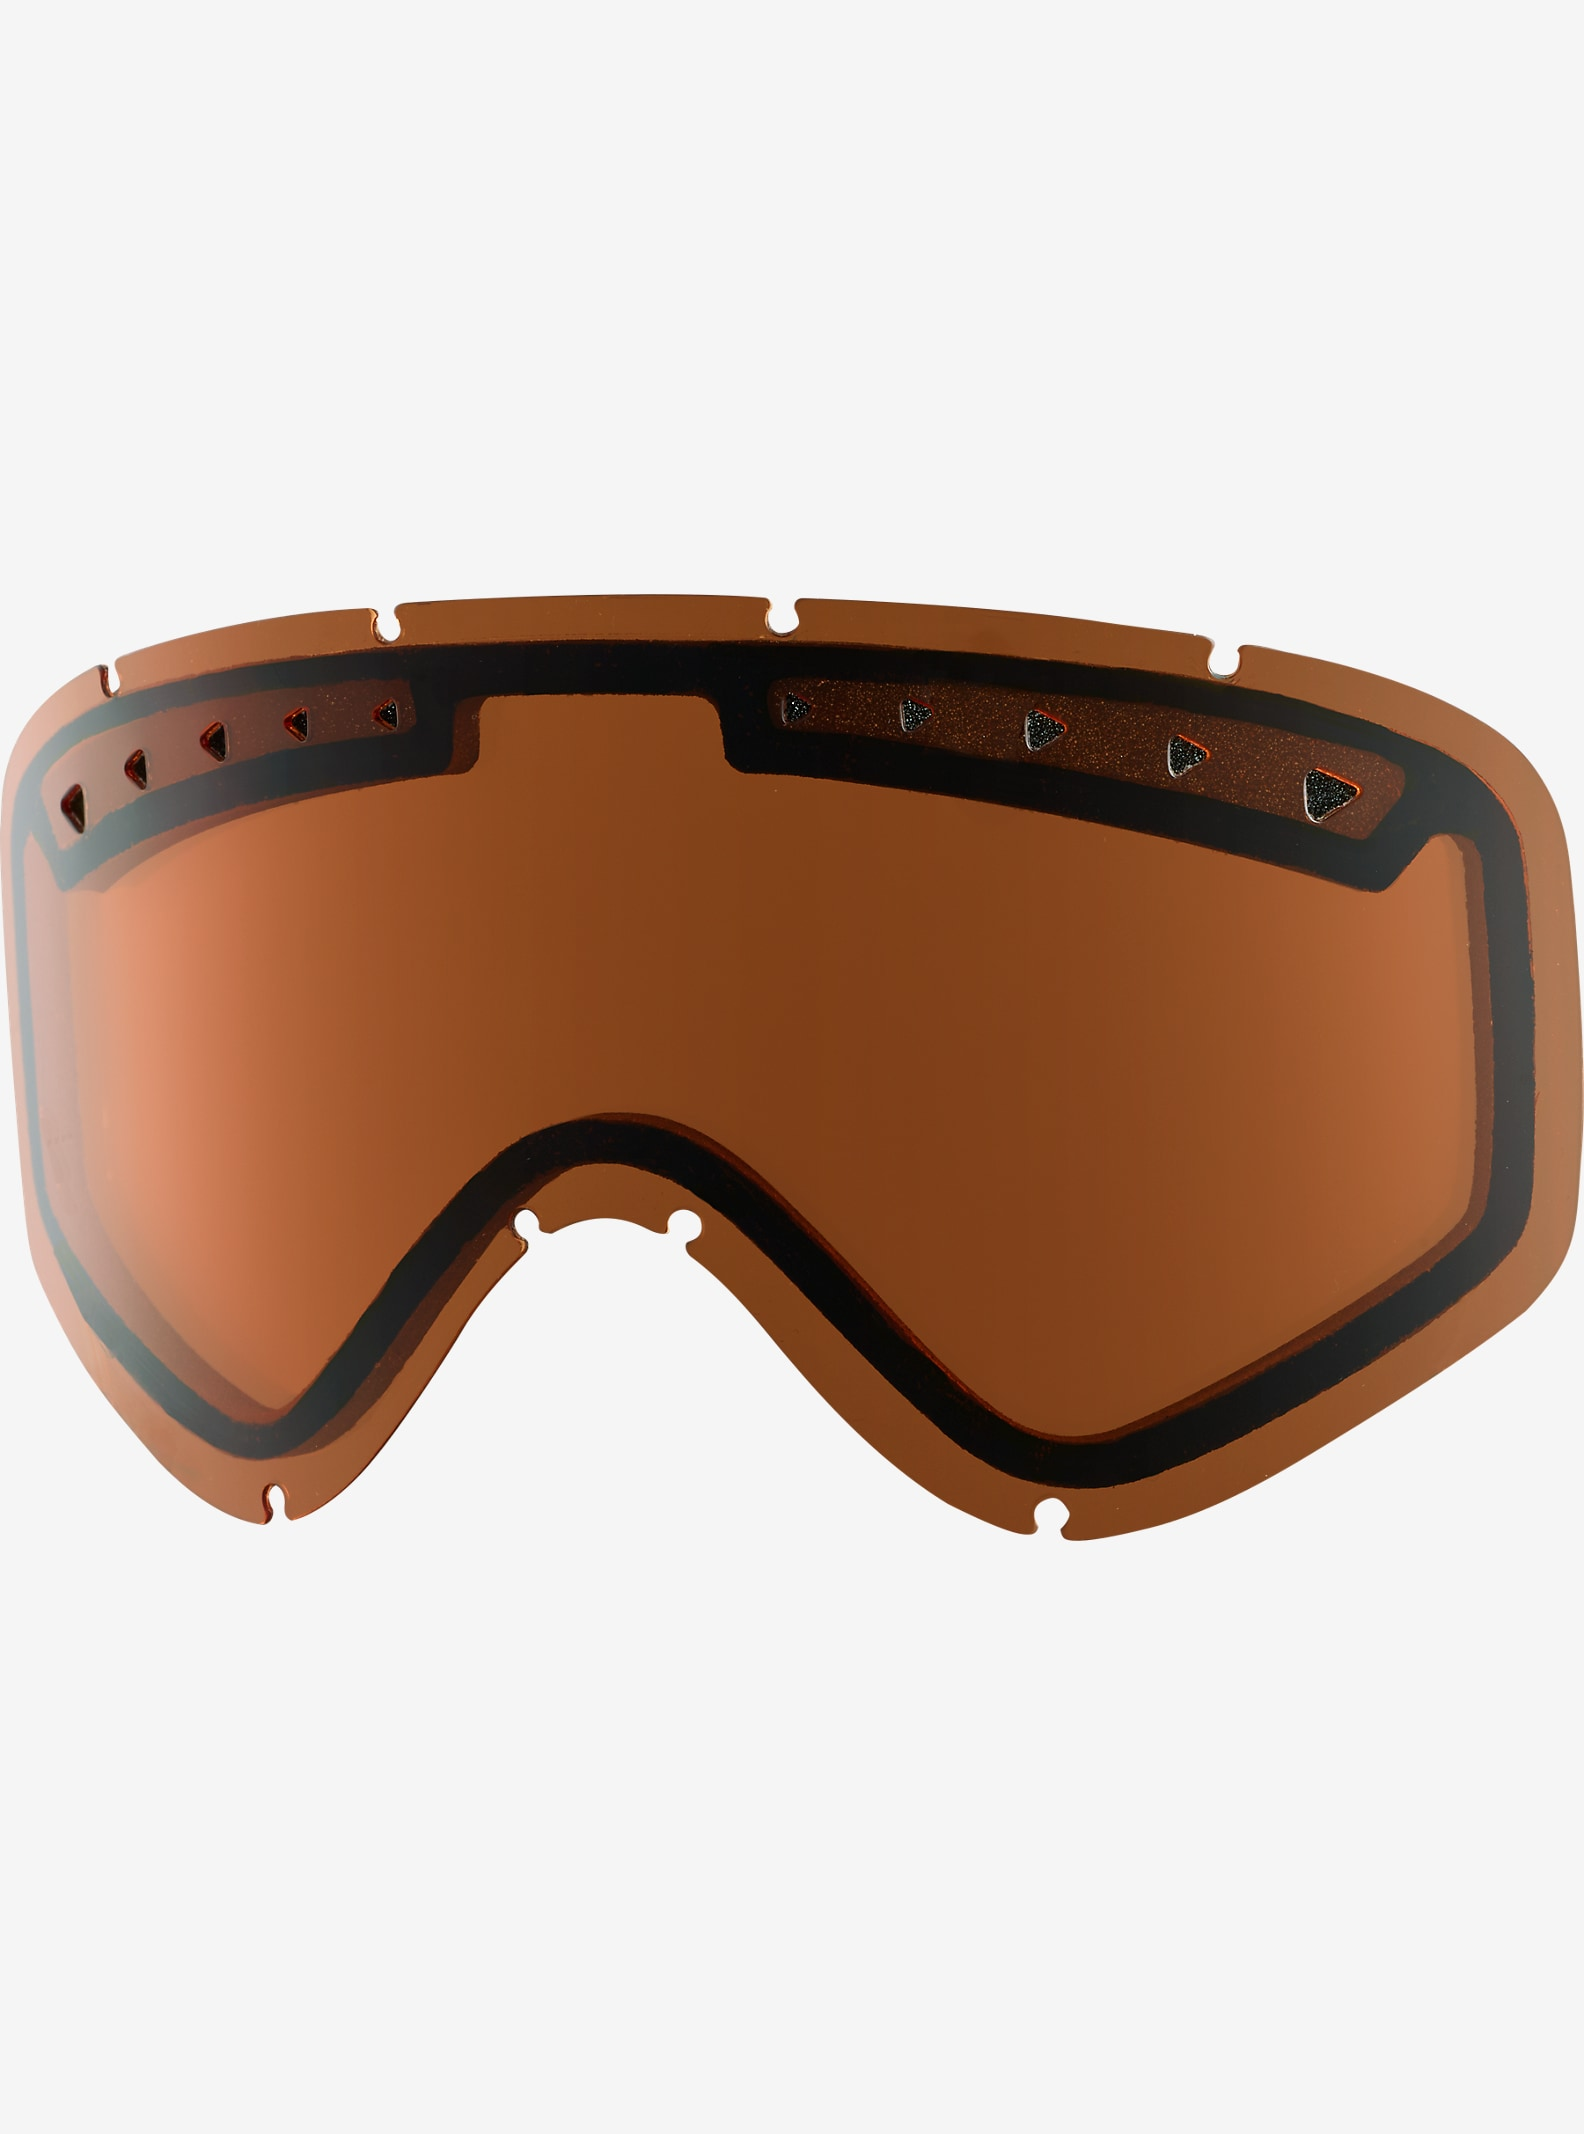 anon. Tracker Goggle Lens shown in Amber (55% VLT)